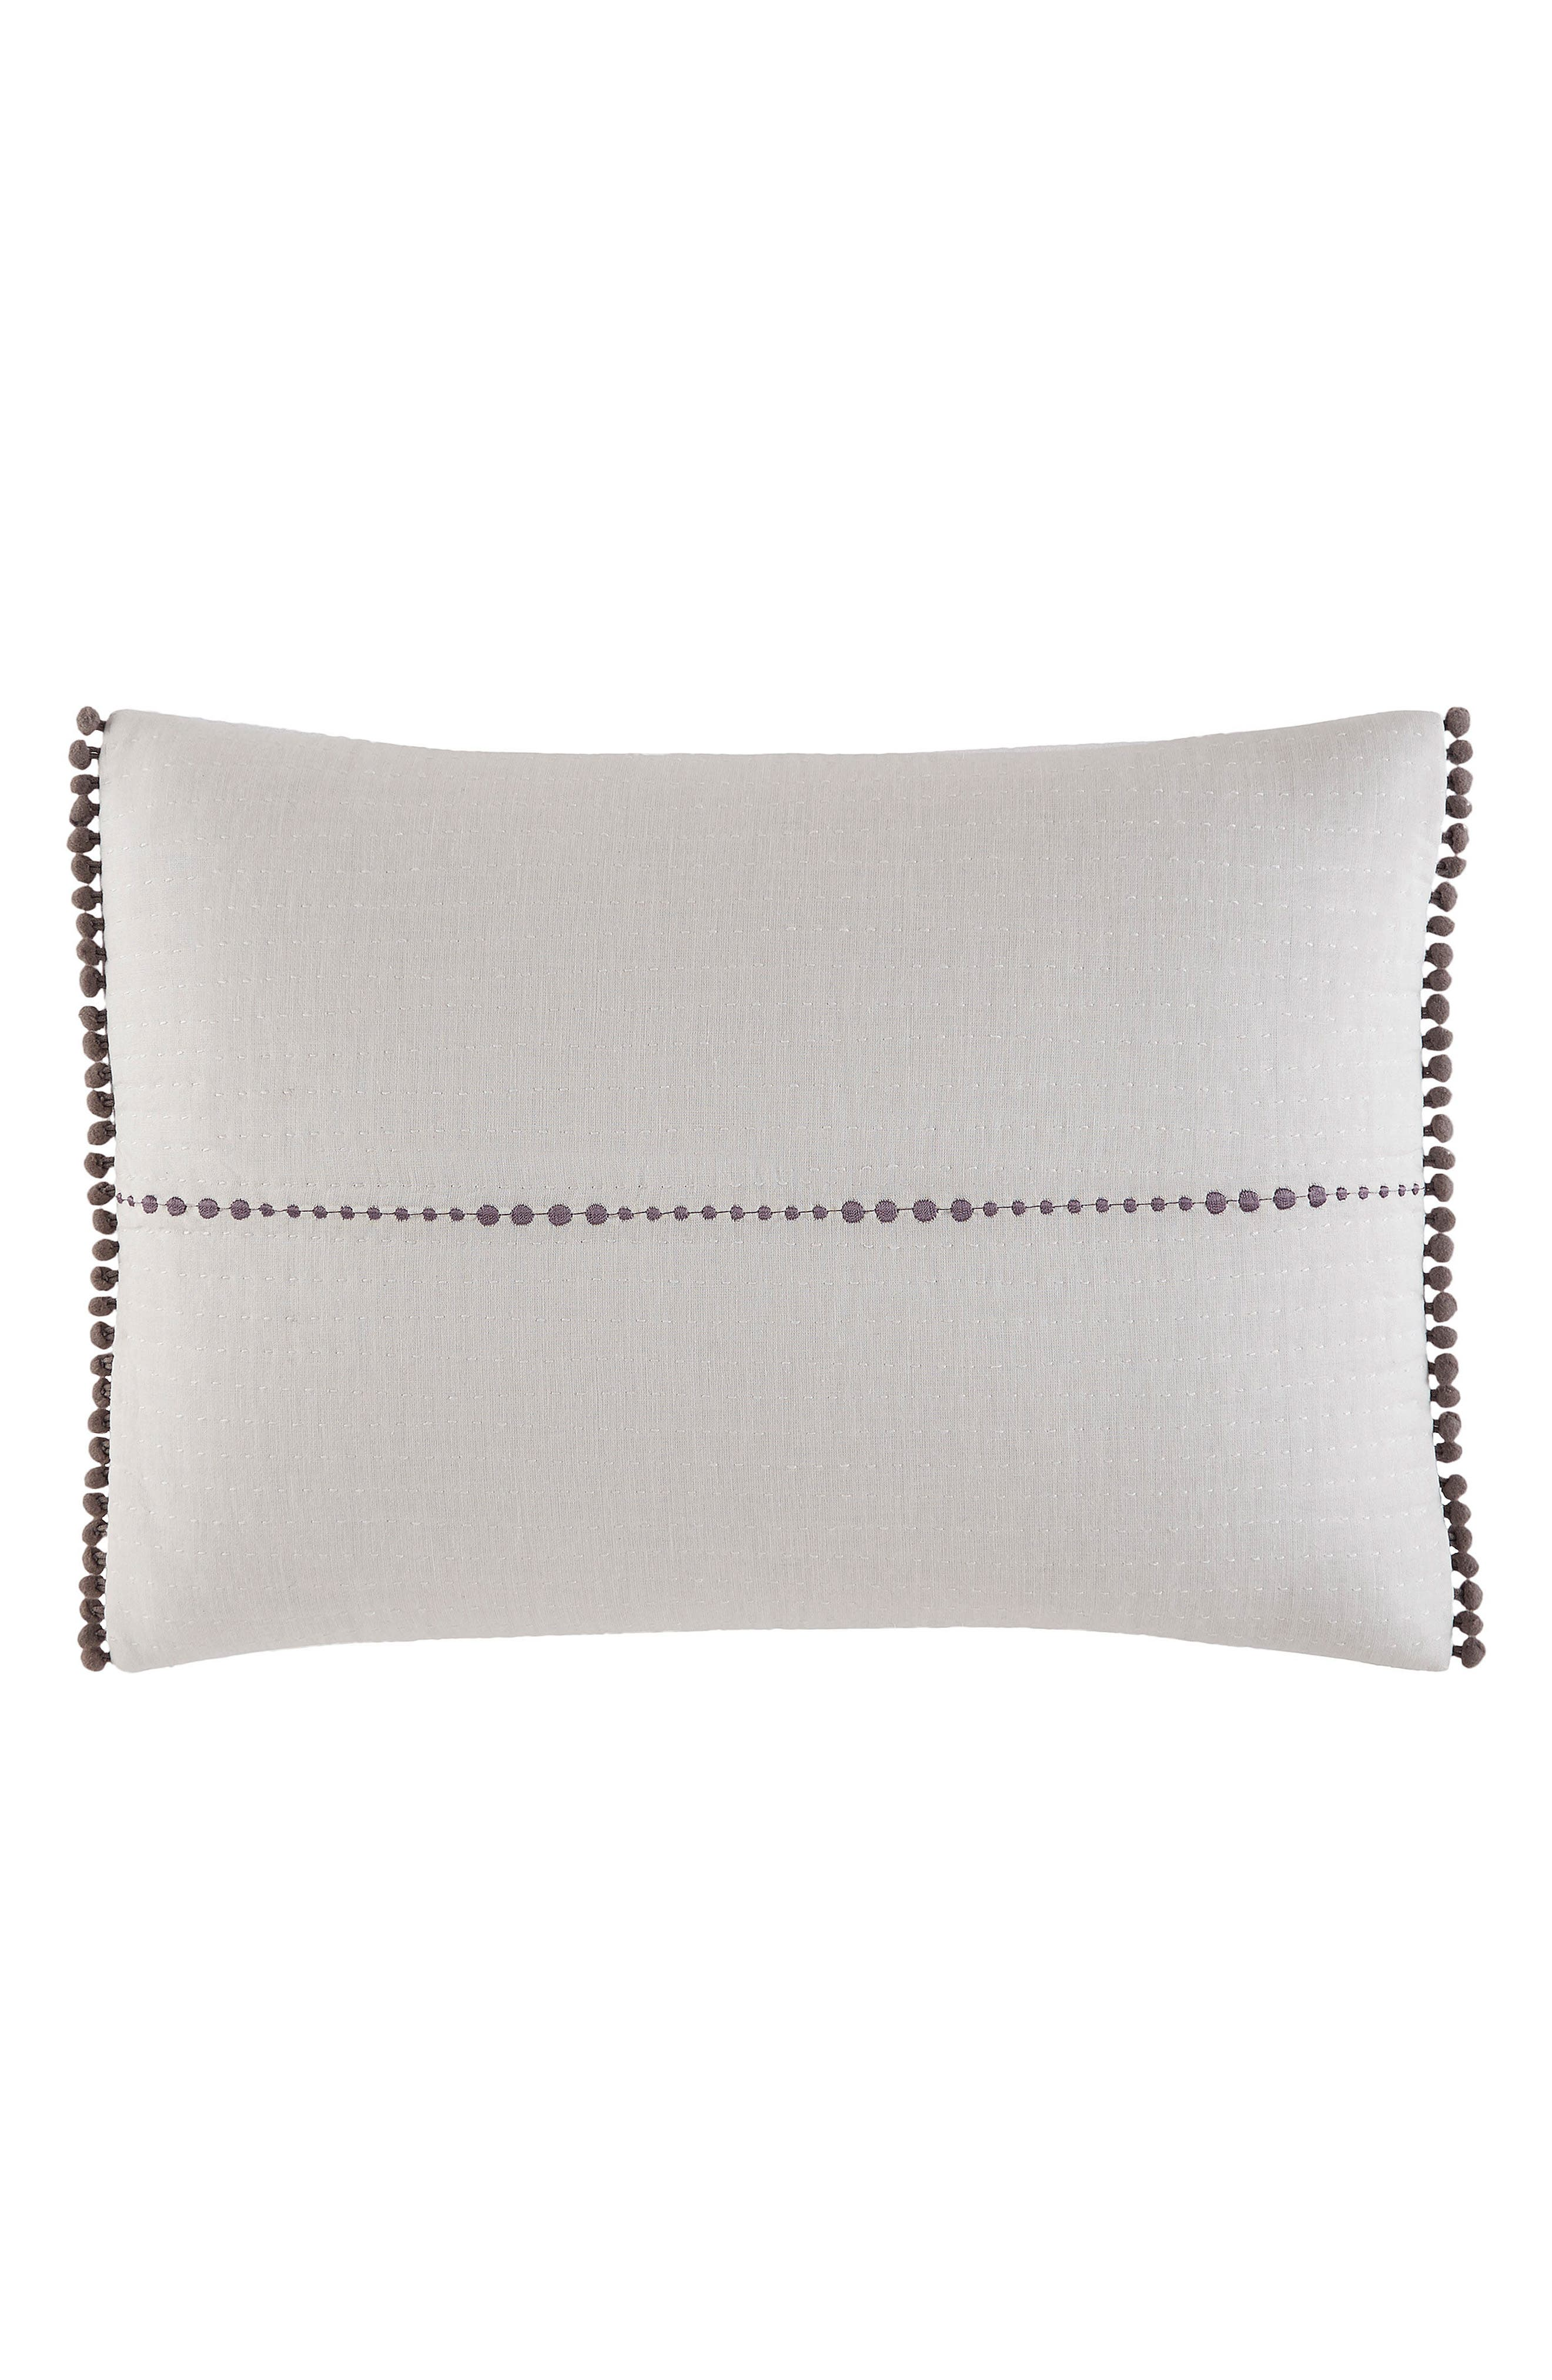 Greystone Accent Pillow,                             Main thumbnail 1, color,                             WHITE